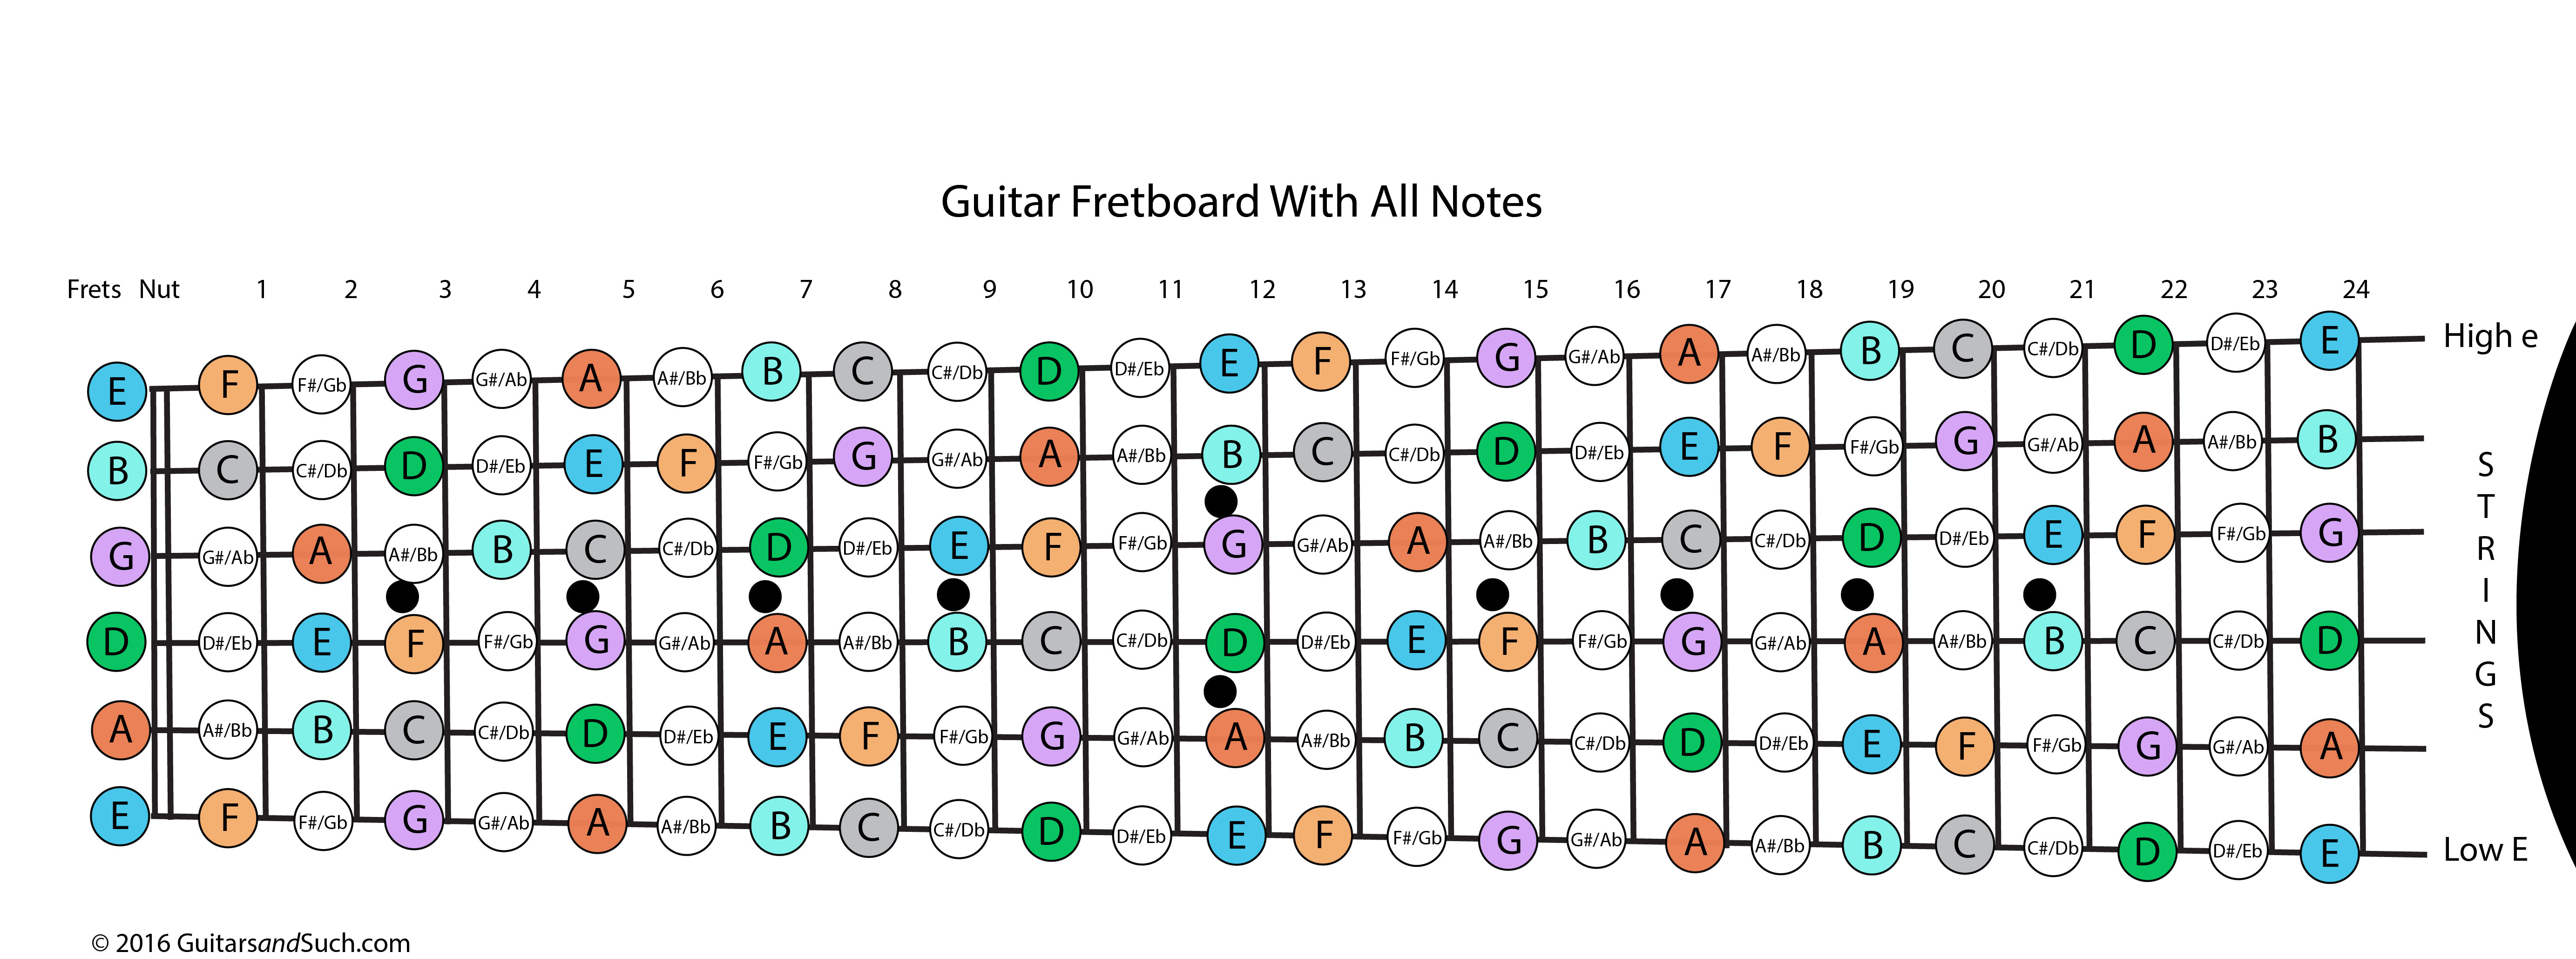 Guitar Fretboard With Frets Numbered And Notes Named How To Read Chord Diagrams All